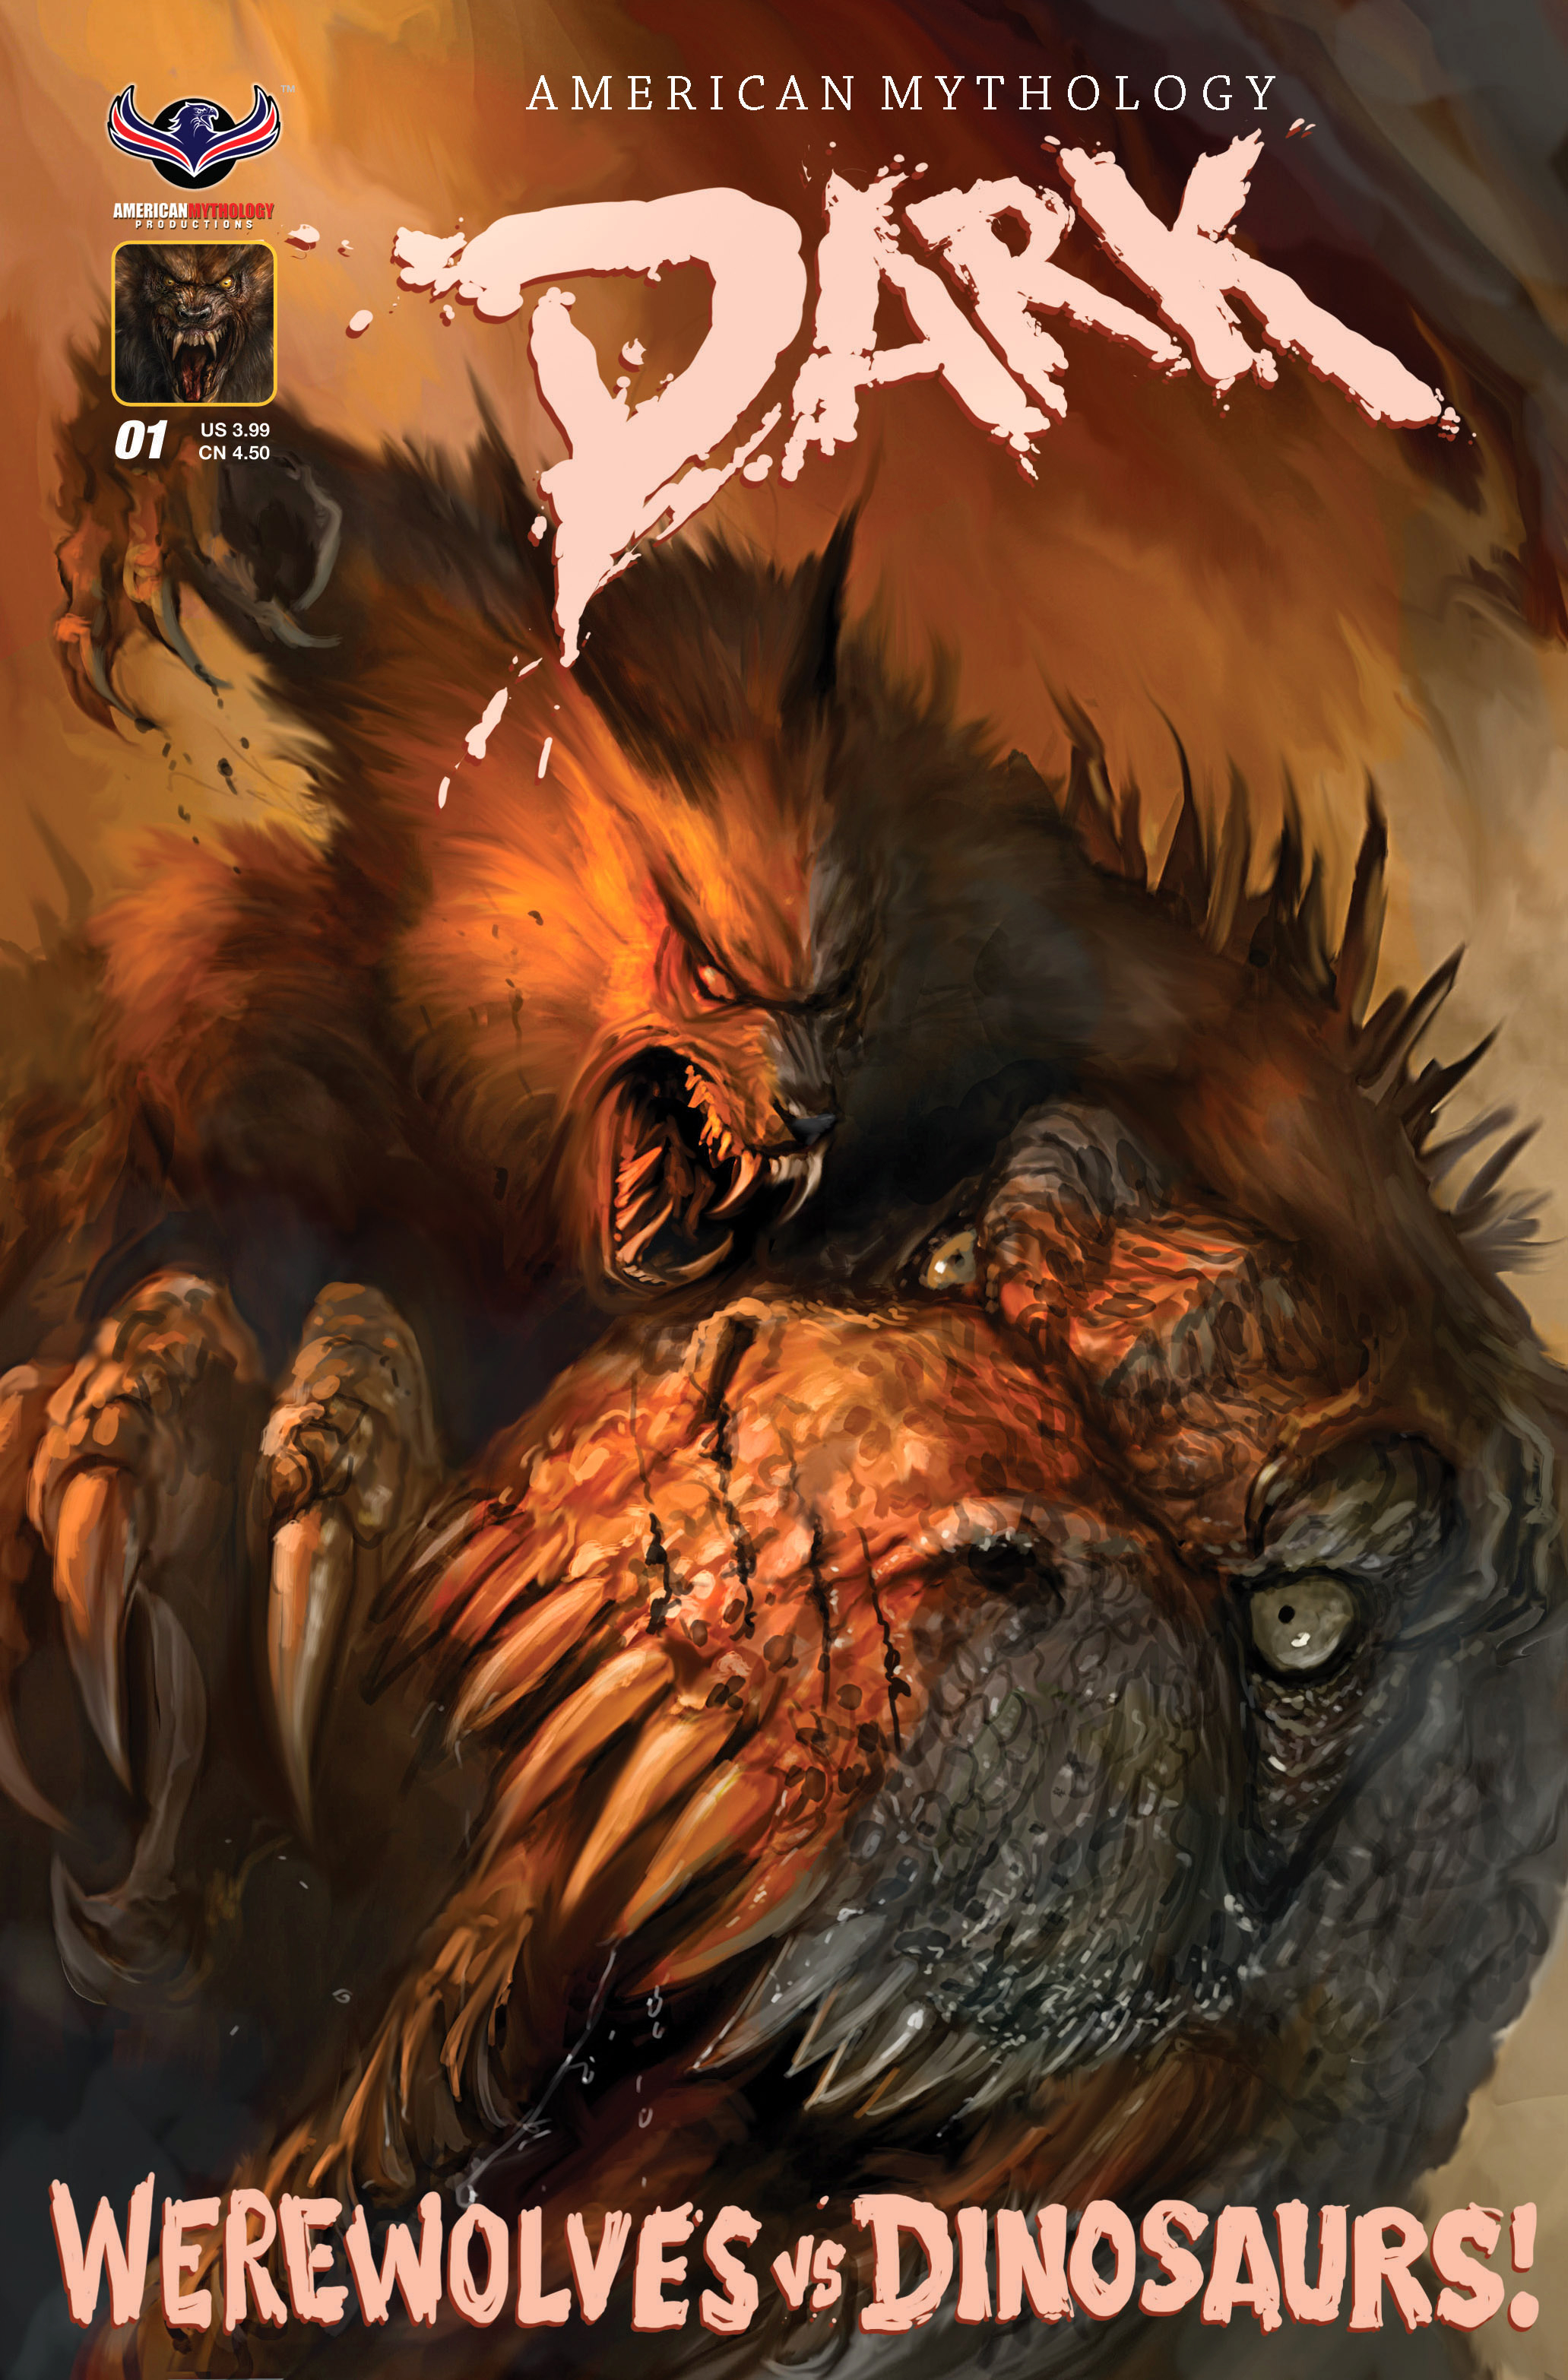 AM DARK WEREWOLVES VS DINOSAURS #1 FEROCIOUS CVR (O/A)